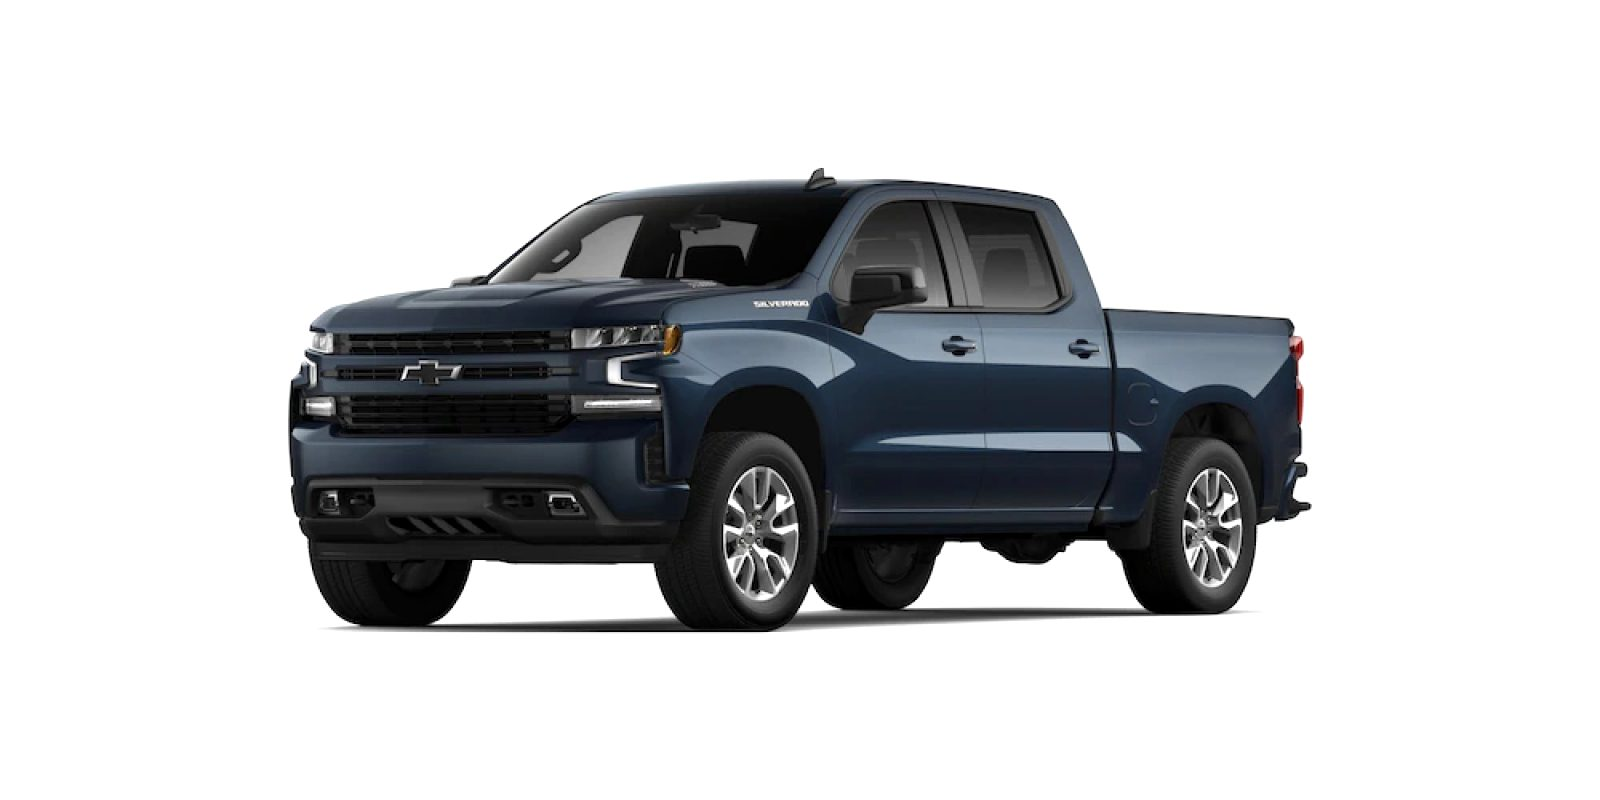 2021 chevrolet ld Release Date